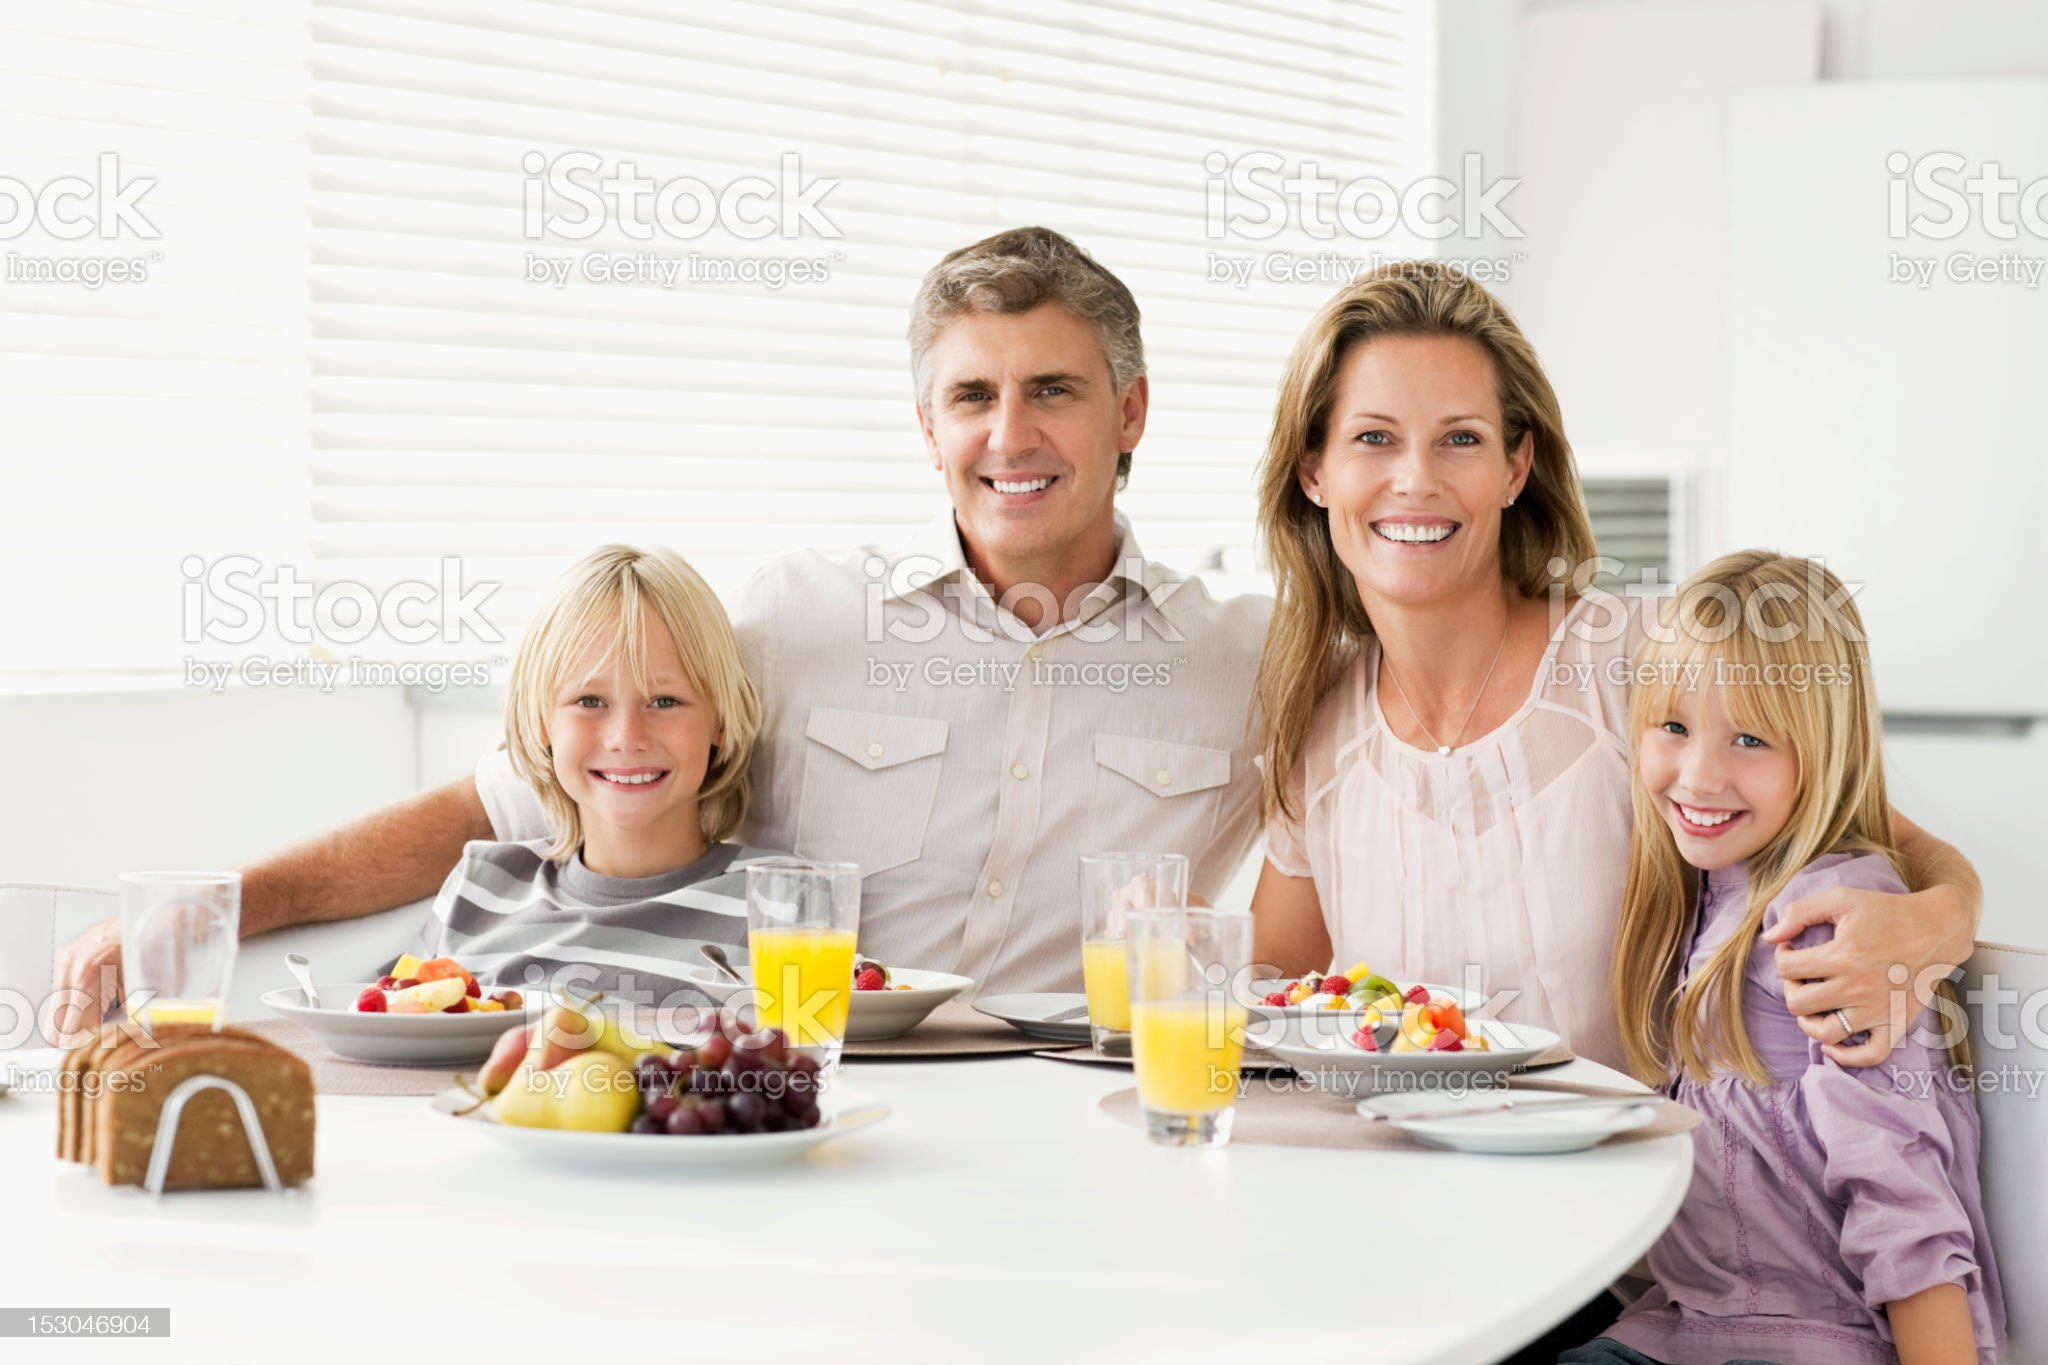 Family Sitting at Breakfast Table Smiling royalty-free stock photo